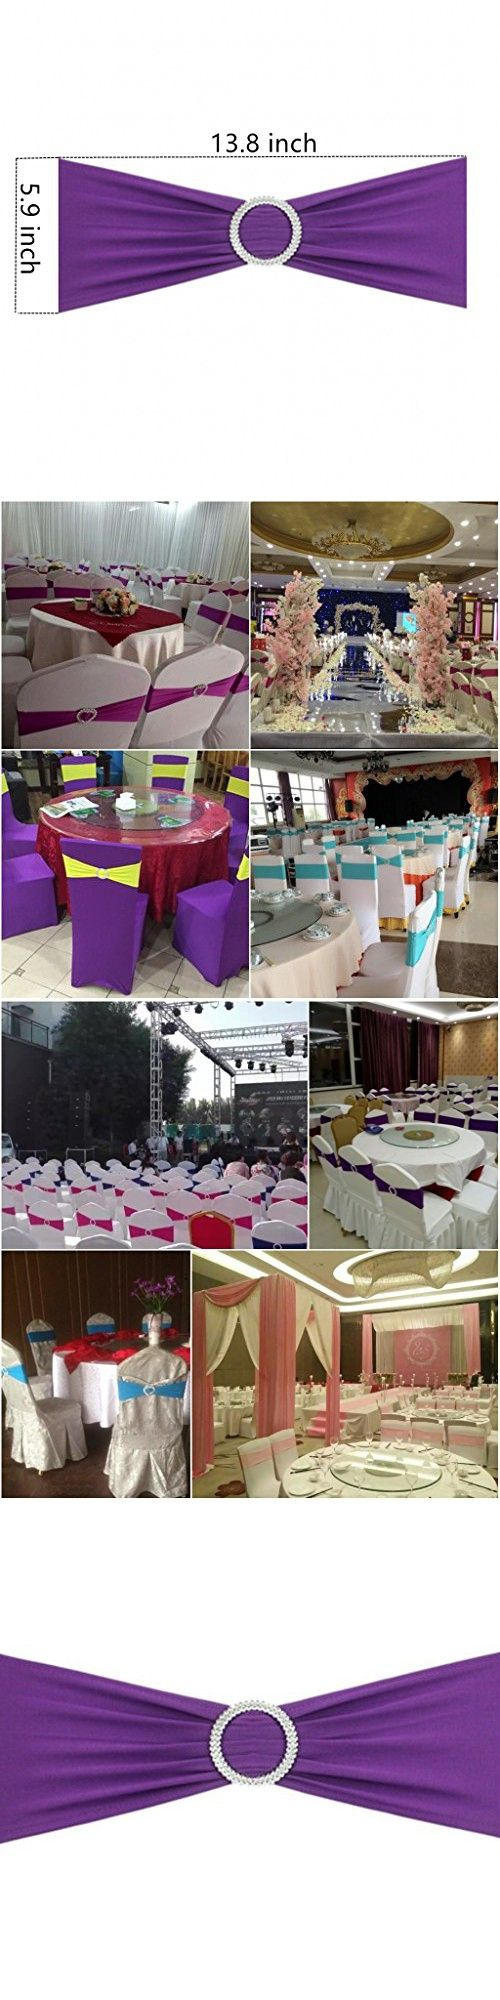 Fvstar Stretch Wedding Chair Cover Bands with Buckle Slider Sashes Bow Banquet Party Decorations,Set of 10 pcs (Puple with Ring Buckle)